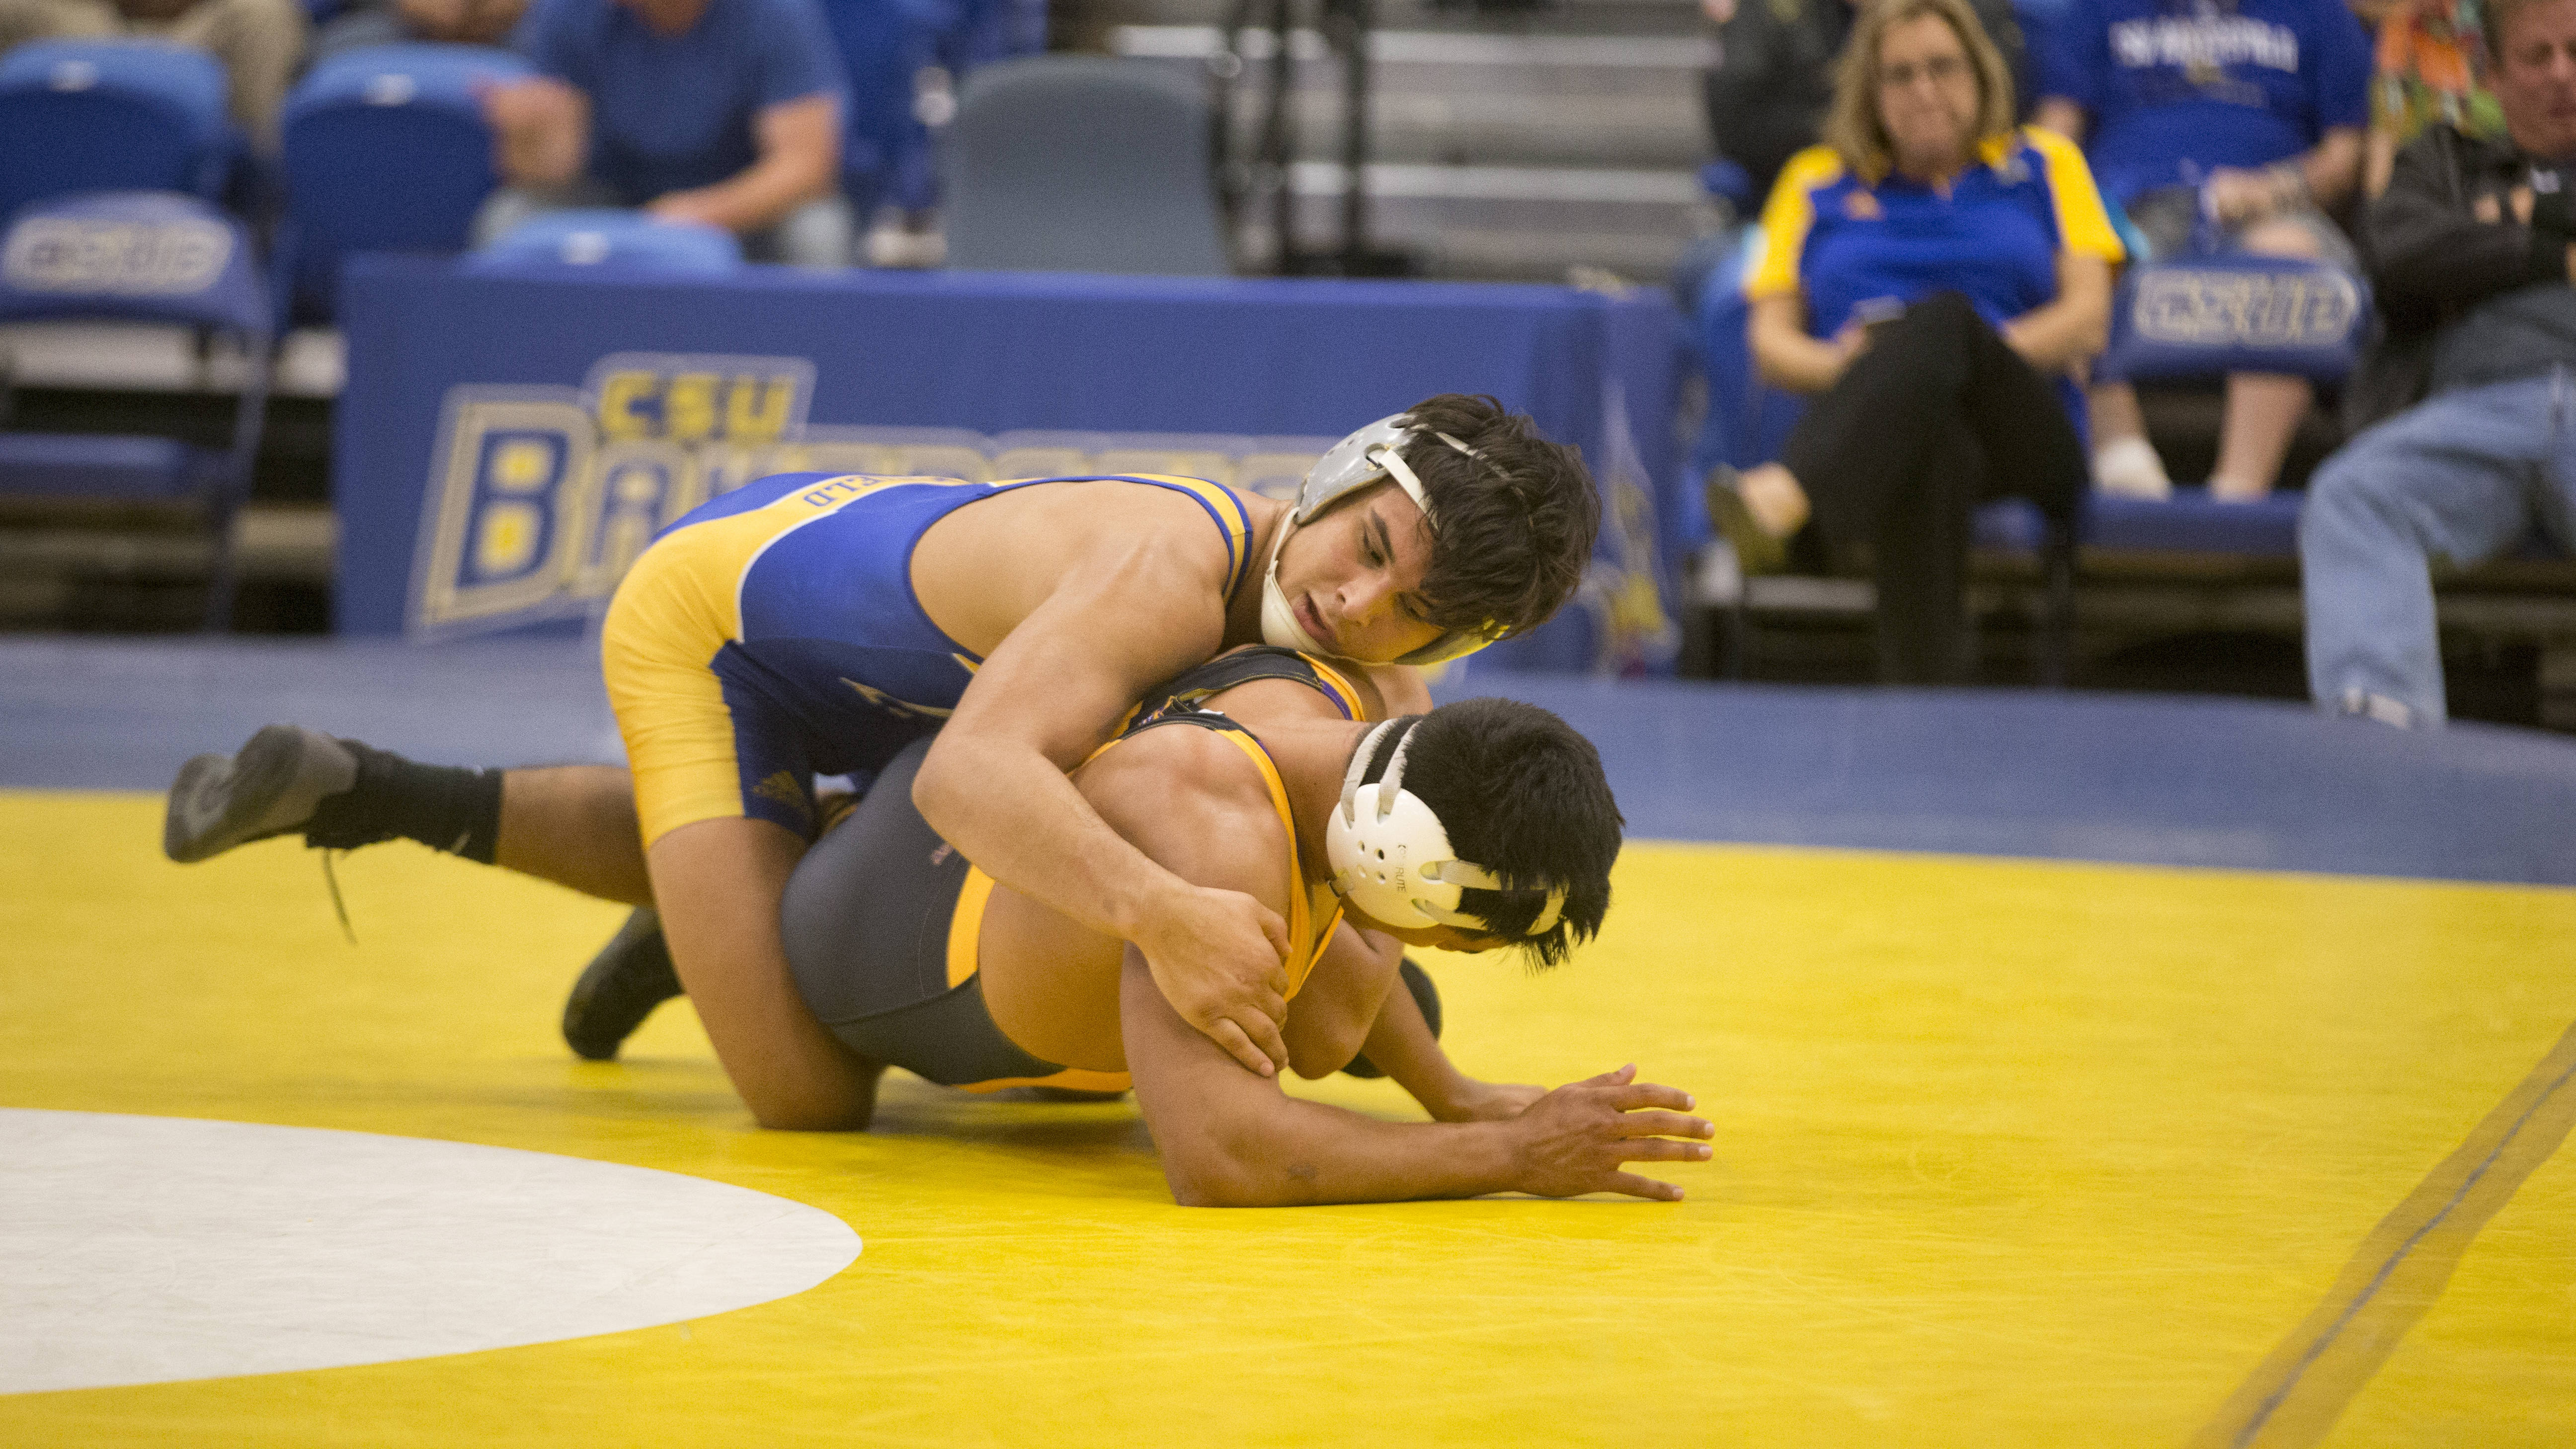 Blue Holds Off Gold For 19-17 Win In Blue-Gold Dual